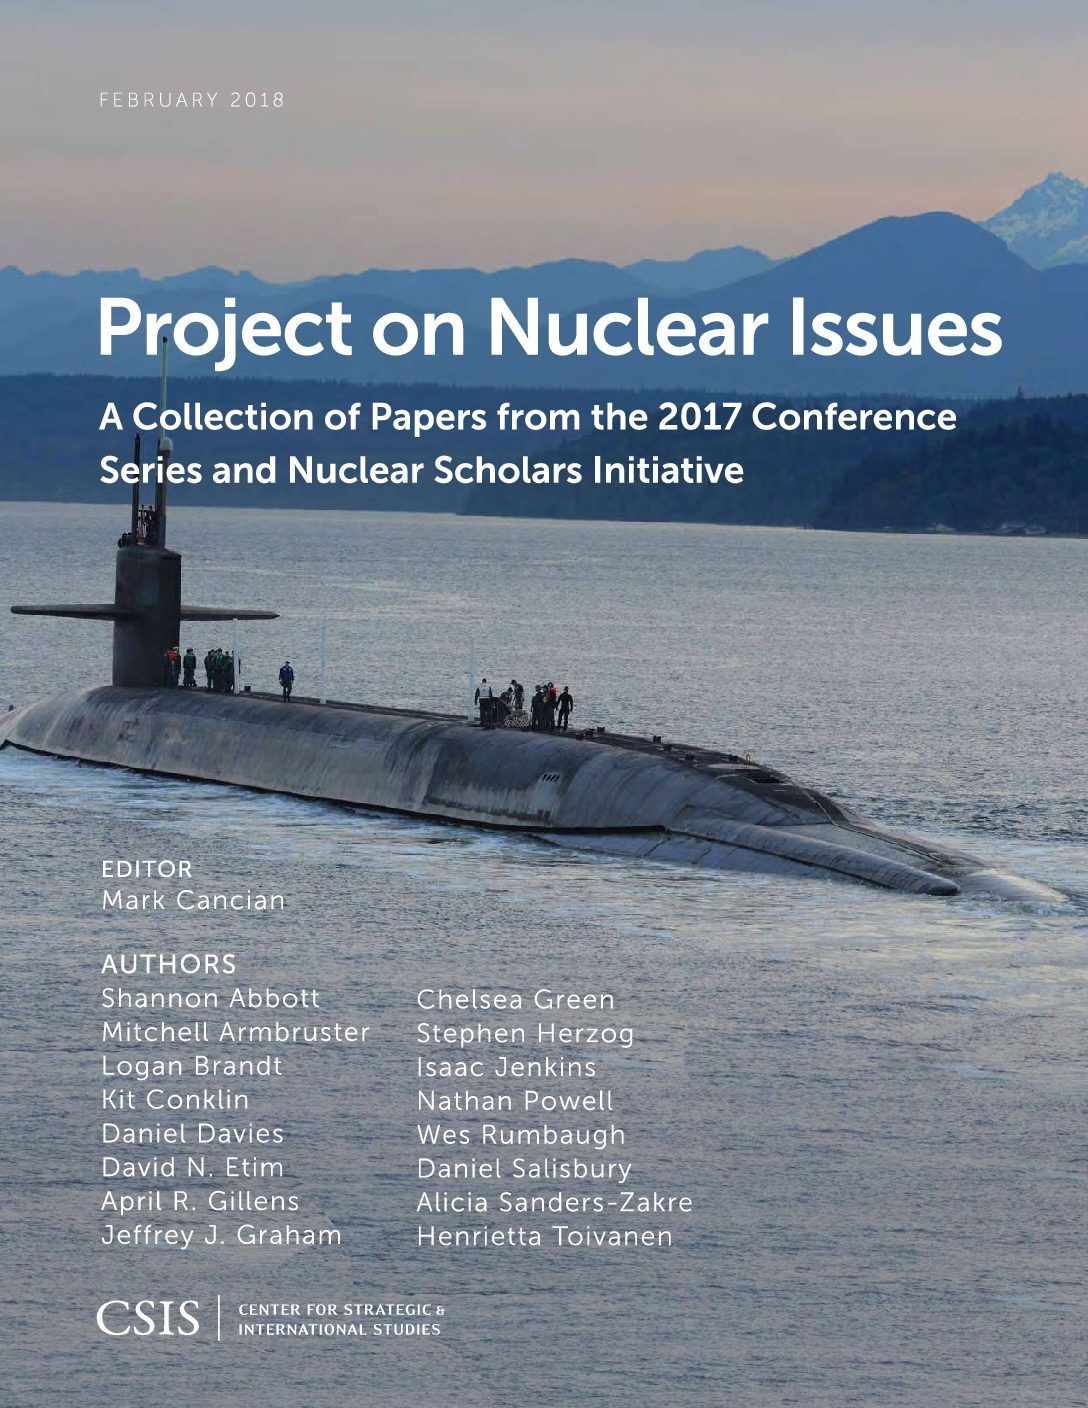 Project on Nuclear Issues 2017 Nuclear Scholars Initiative